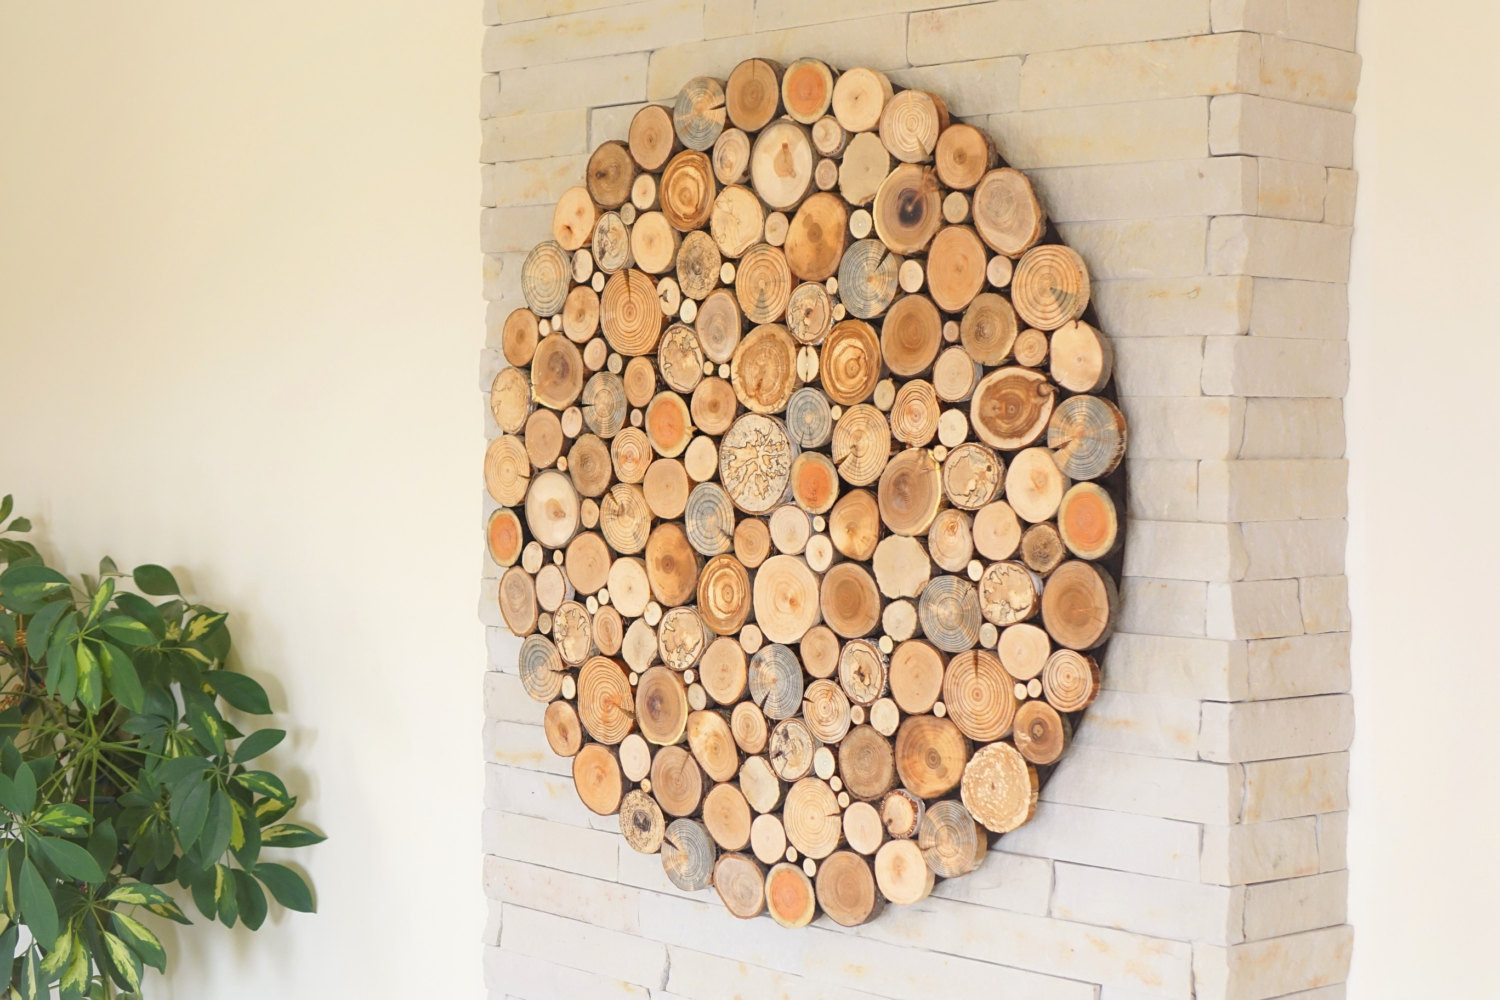 Best ideas about Wooden Wall Art . Save or Pin modern wall wood art Round wooden wall wooden decor Tree Now.